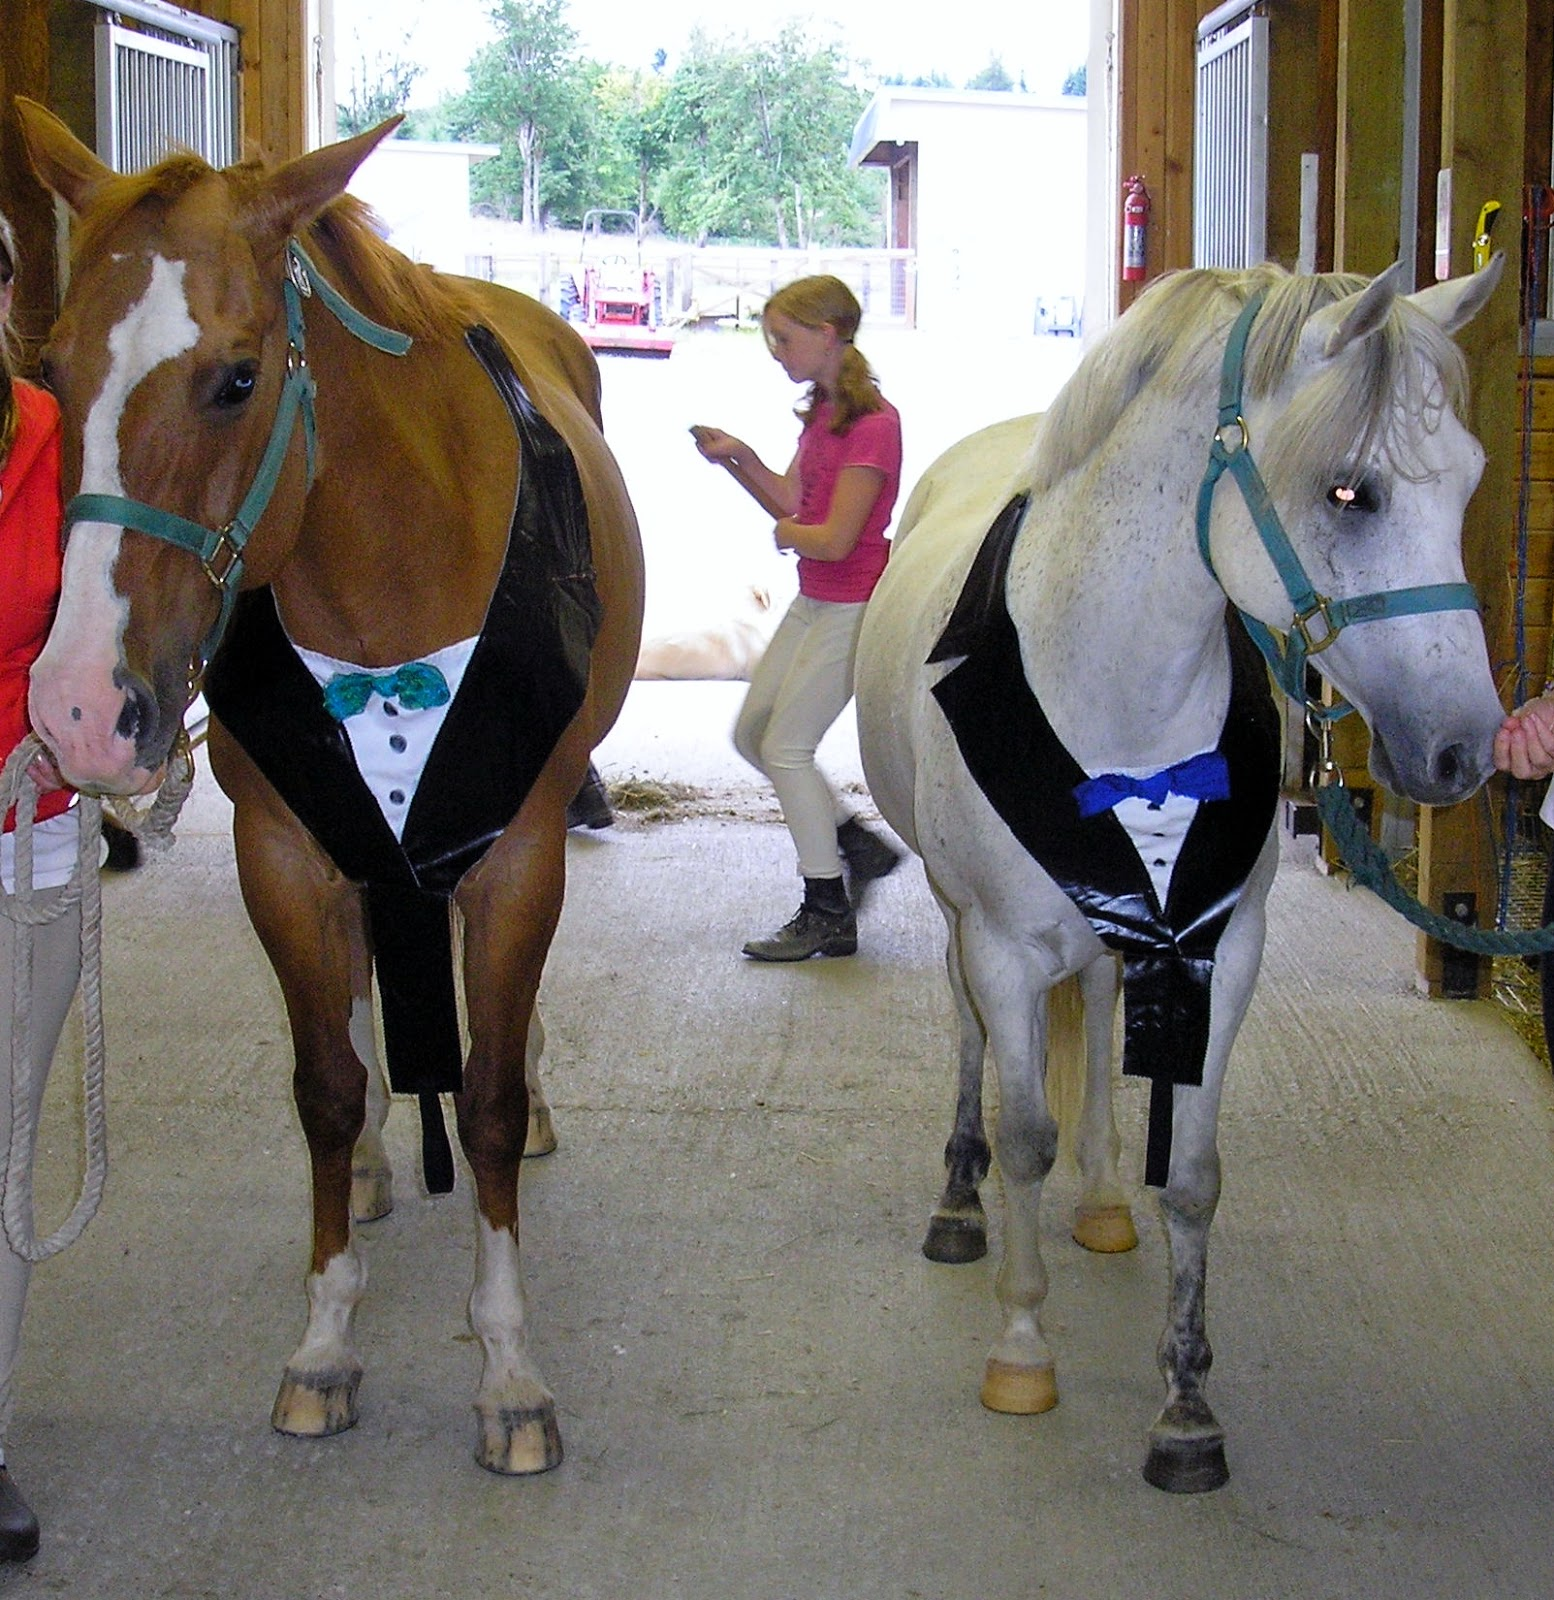 Equestrian Blog Of The Day - A Blonde, Brunette and a Redhead